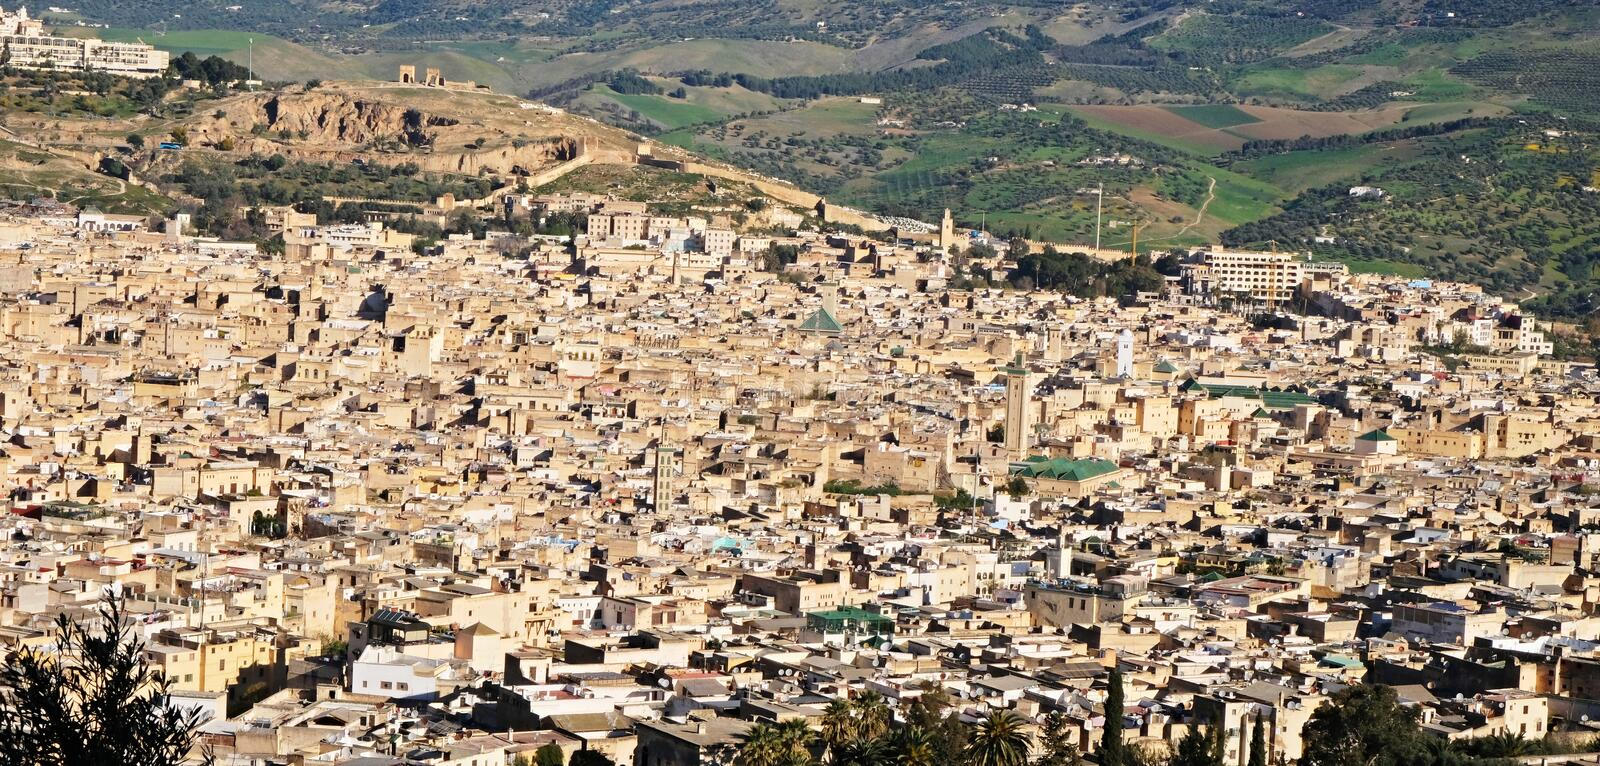 Very dense and close development of the city blocks of the ancient Moroccan city of Fez in North Africa stock photos